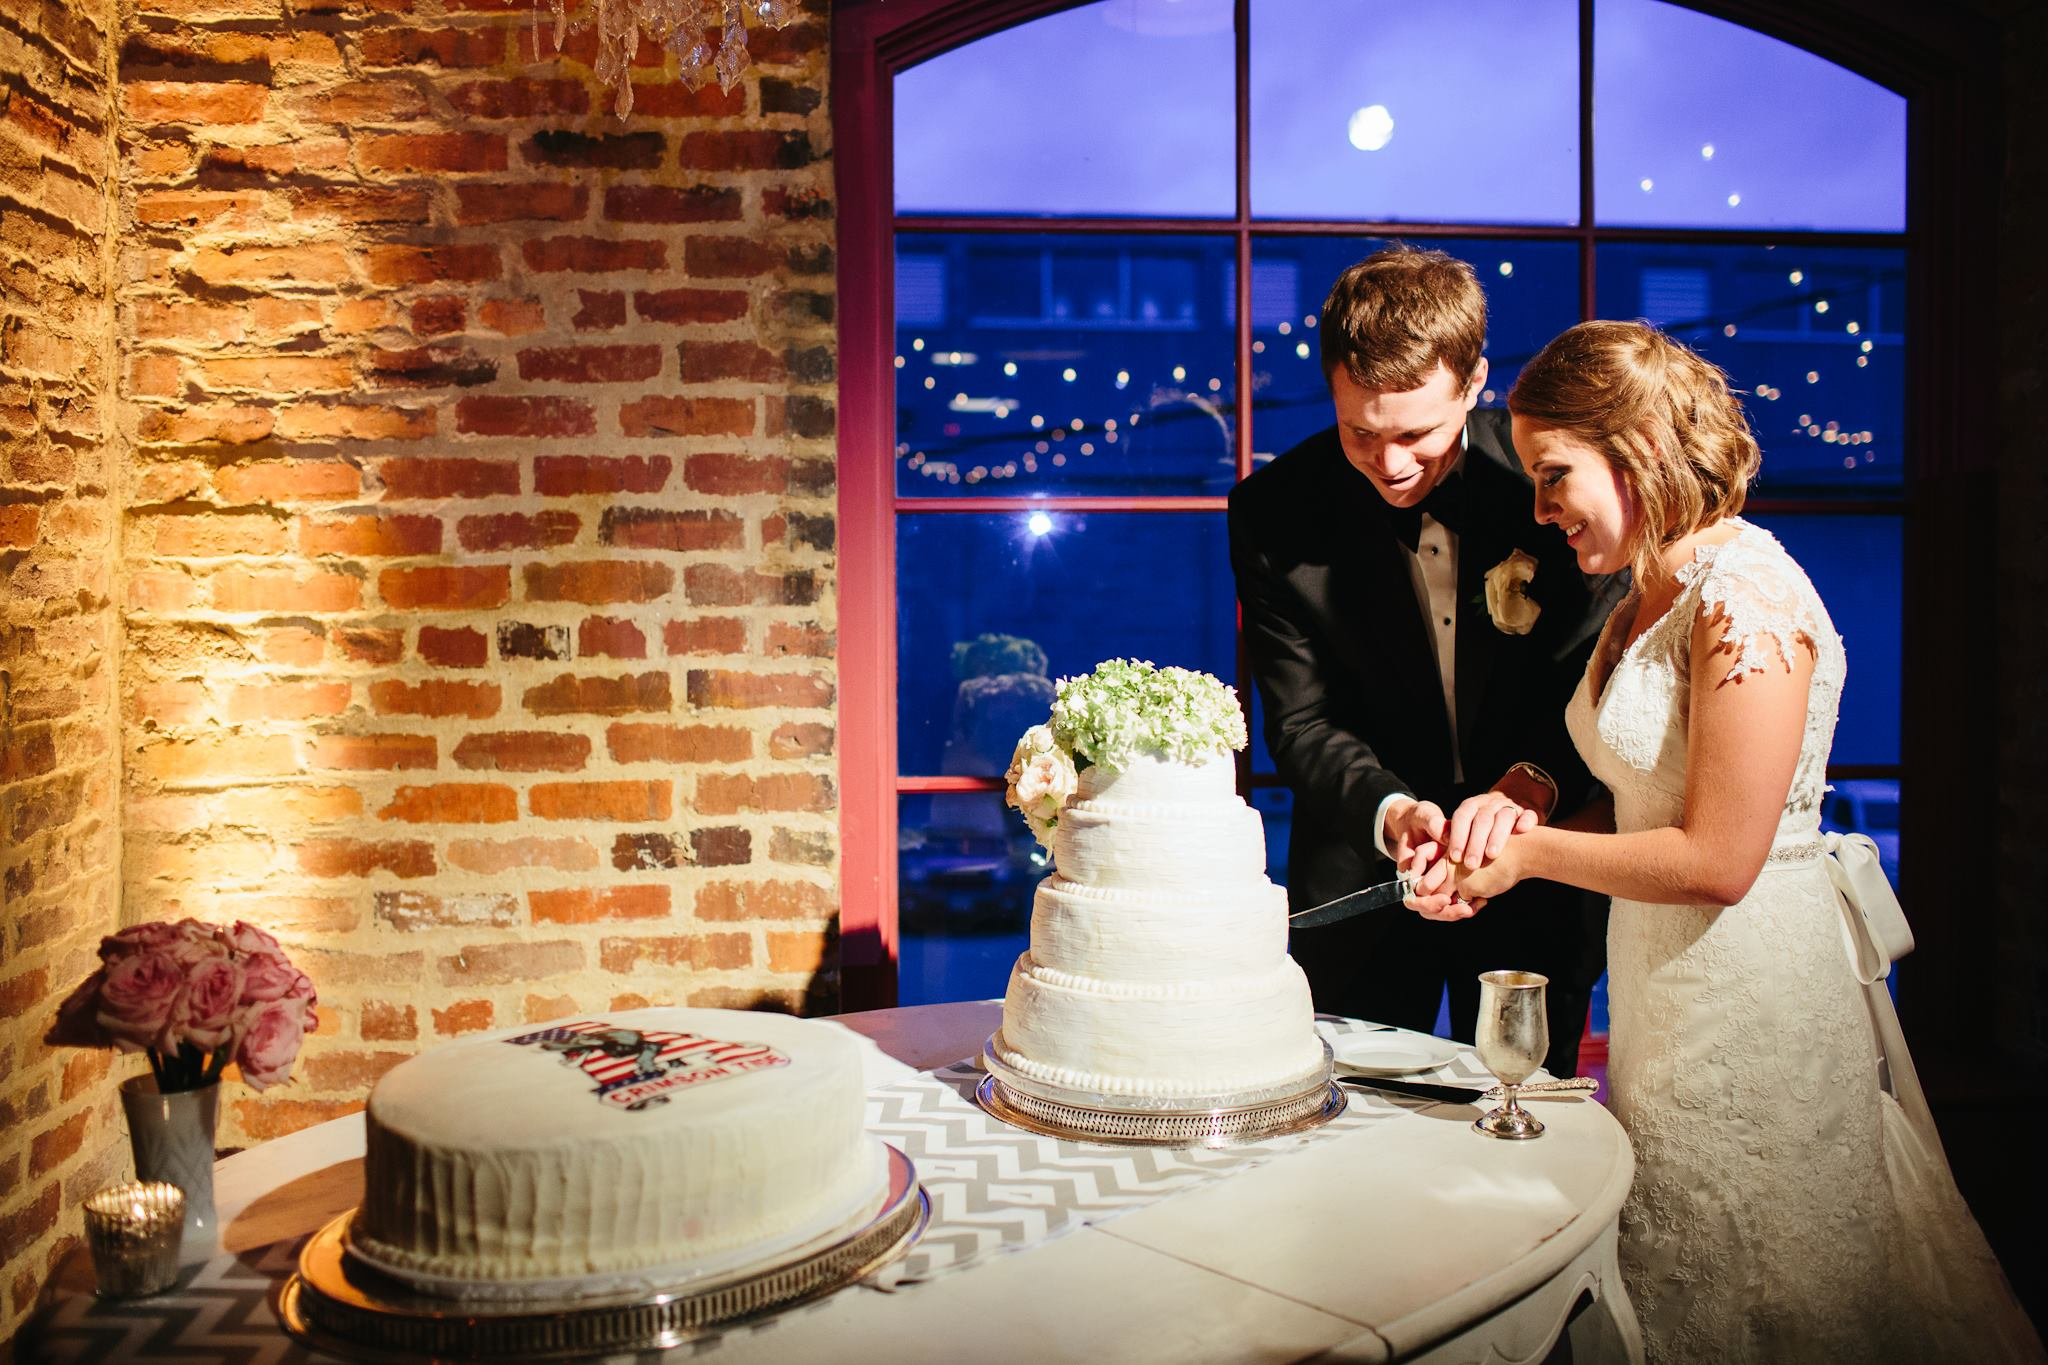 Cake_Houston_Station_Molly_Kirk_Nashville_Reception_Simply_Yours_Weddings_Alex_Bee_Photography.jpeg